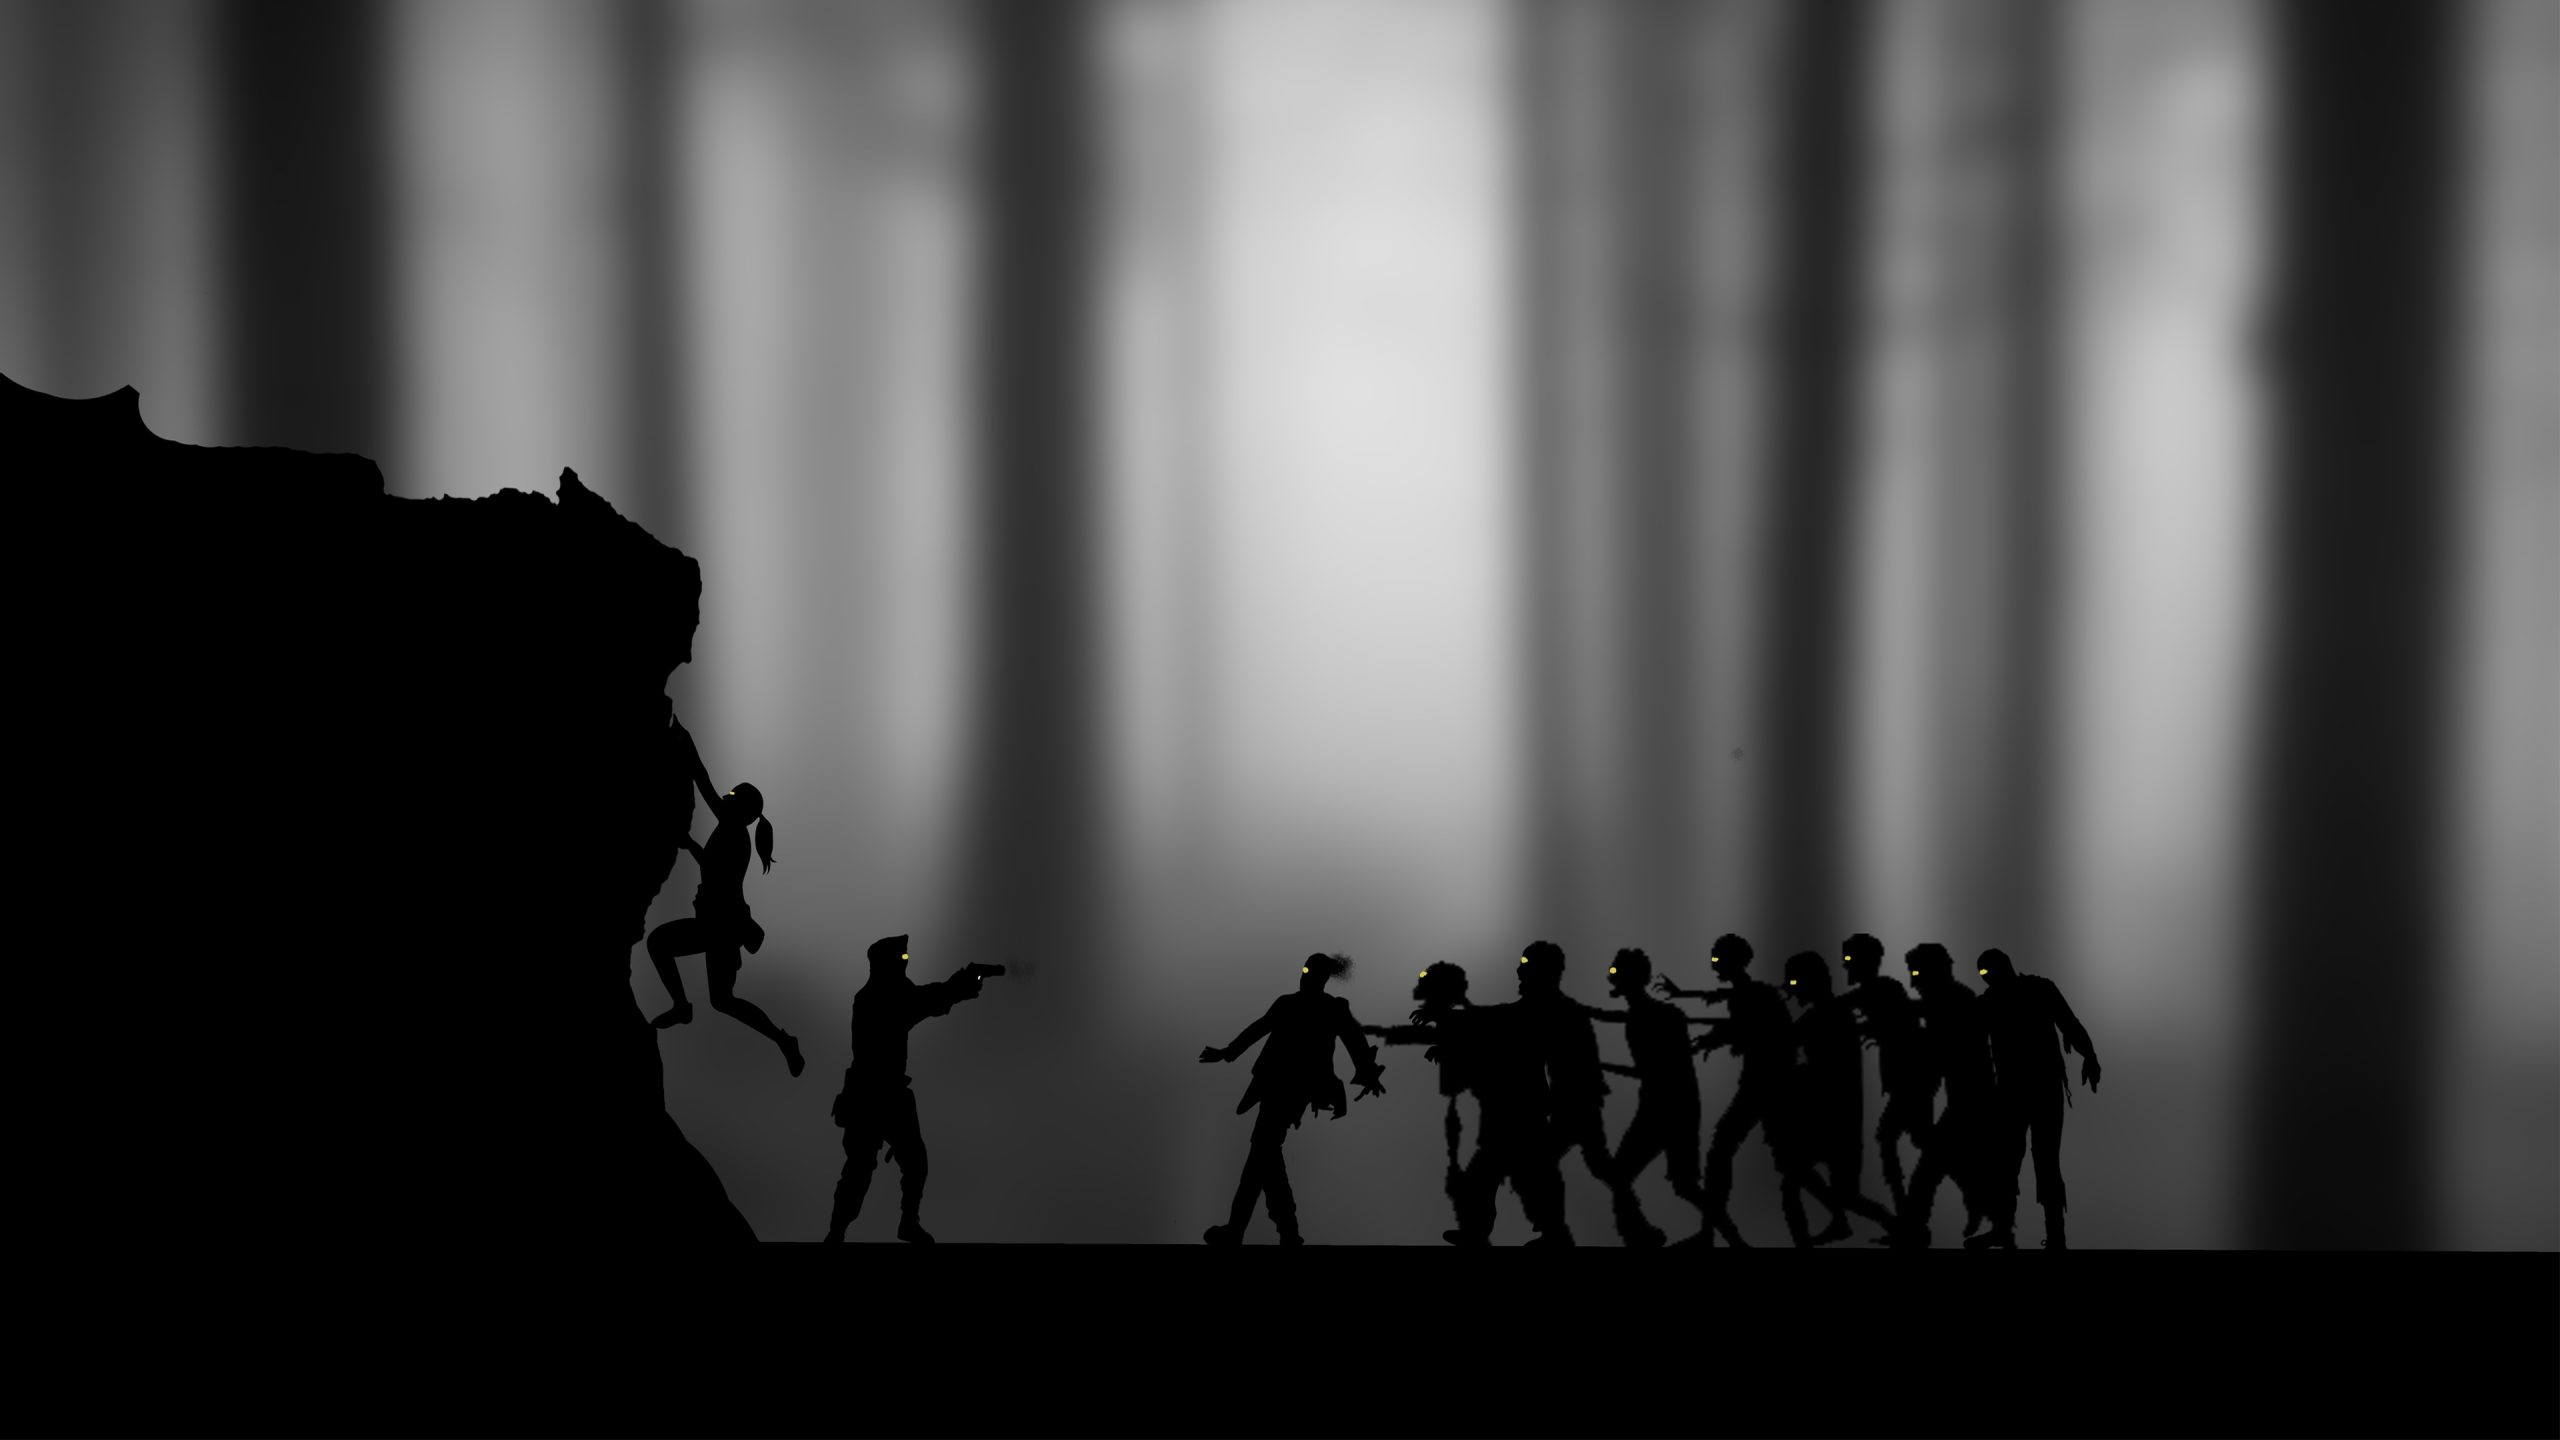 Zombies Black White Monochrome 4k Wallpaper Best Wallpapers